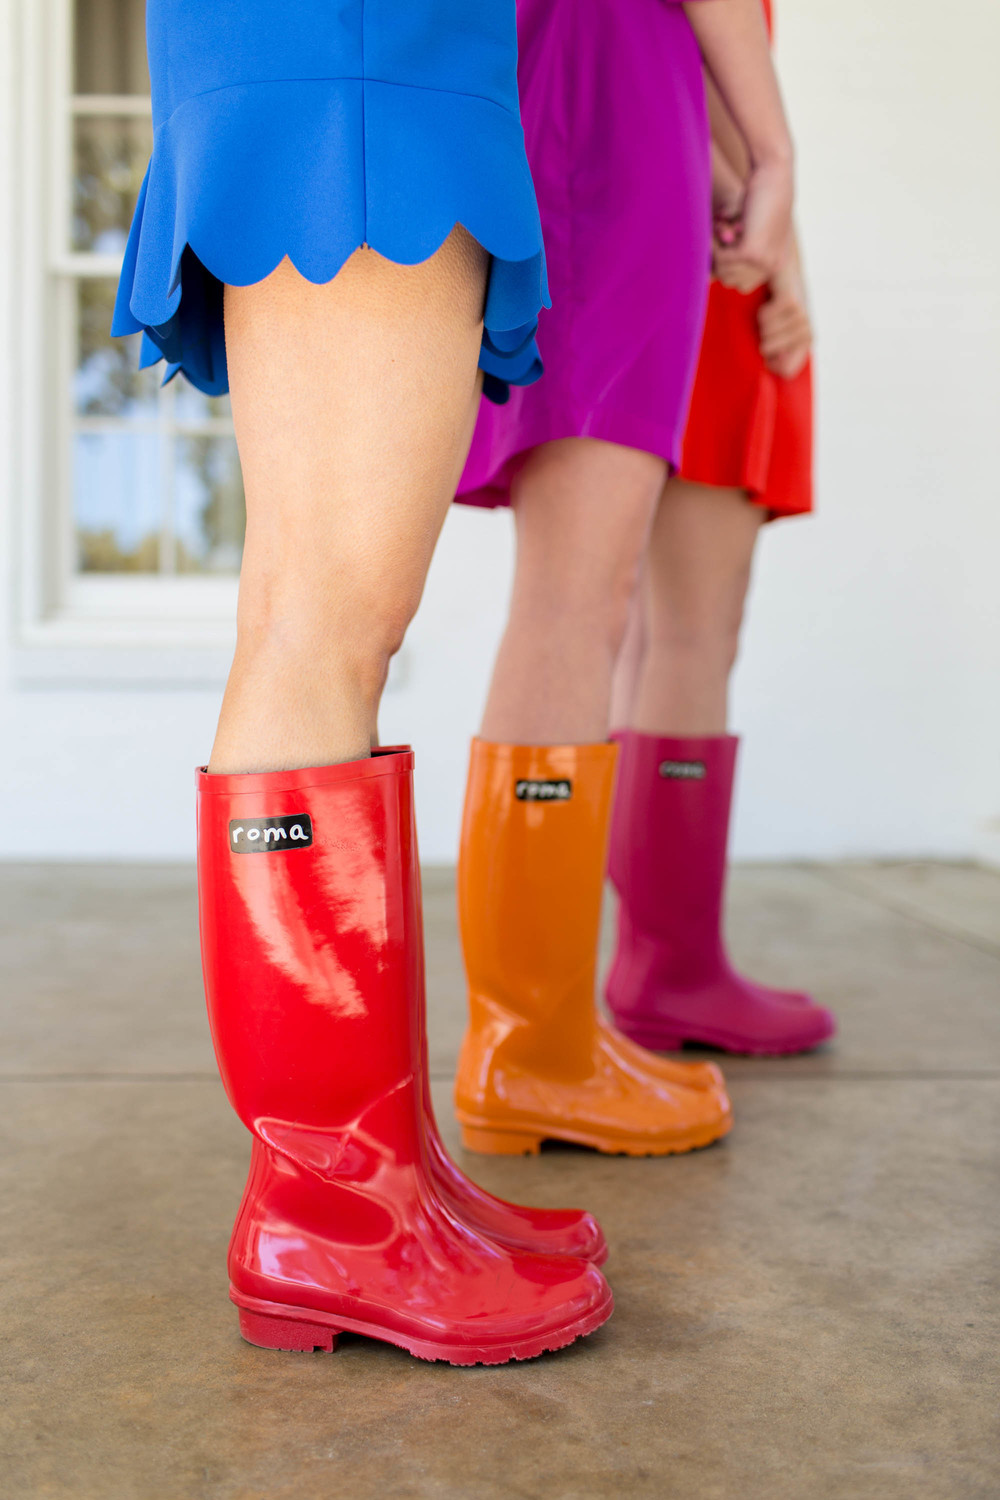 Boots Provided by Roma Boots, a one for one company that uses fashion to give poverty the boot. This company is near and dear to our hearts.Boots shown in Glossy Red, Glossy Orange, and Matte Magenta.